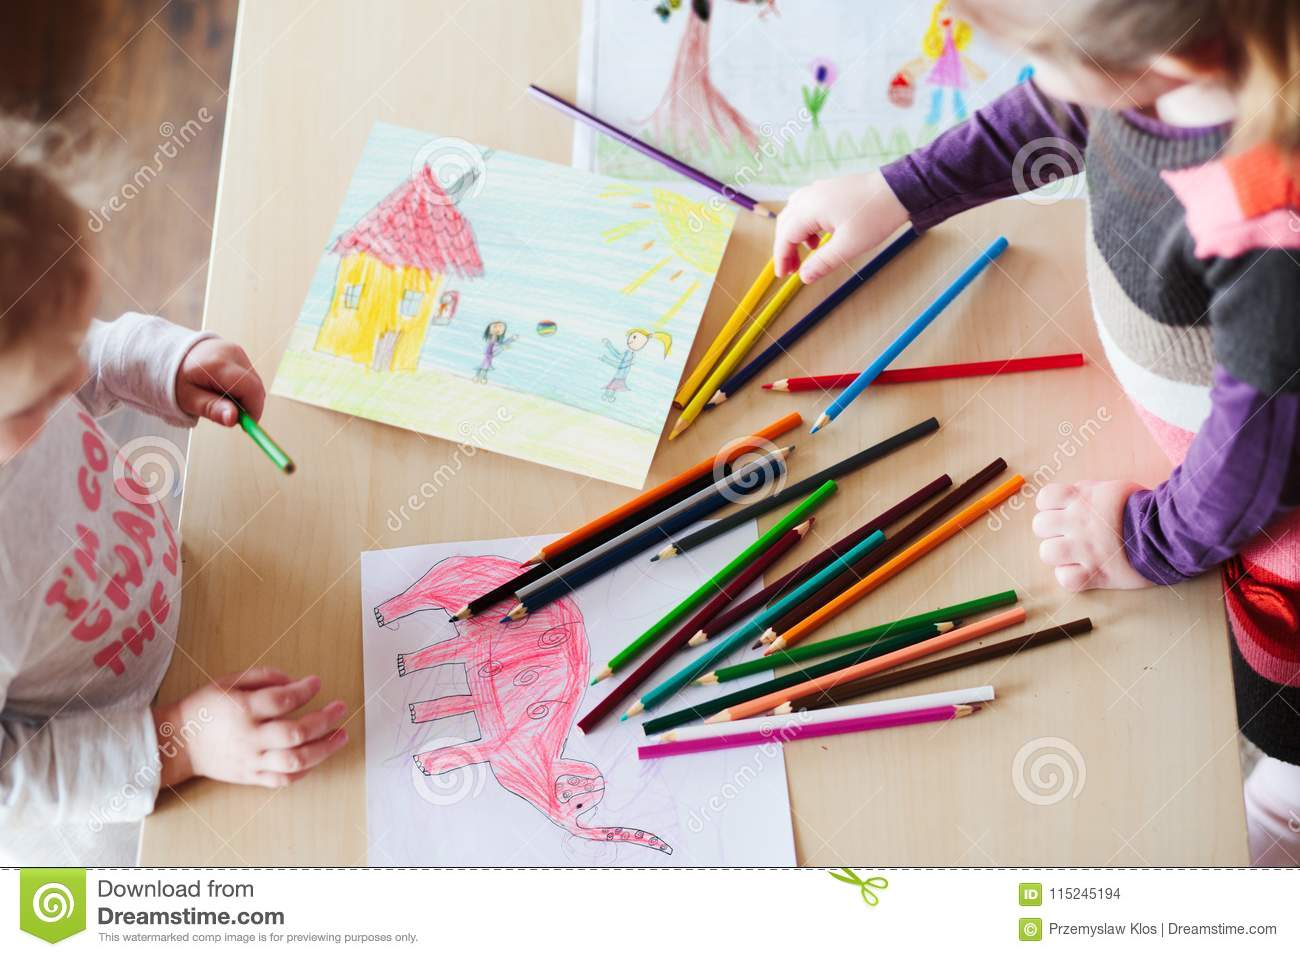 Little girls drawing a colorful pictures of elephant and playing